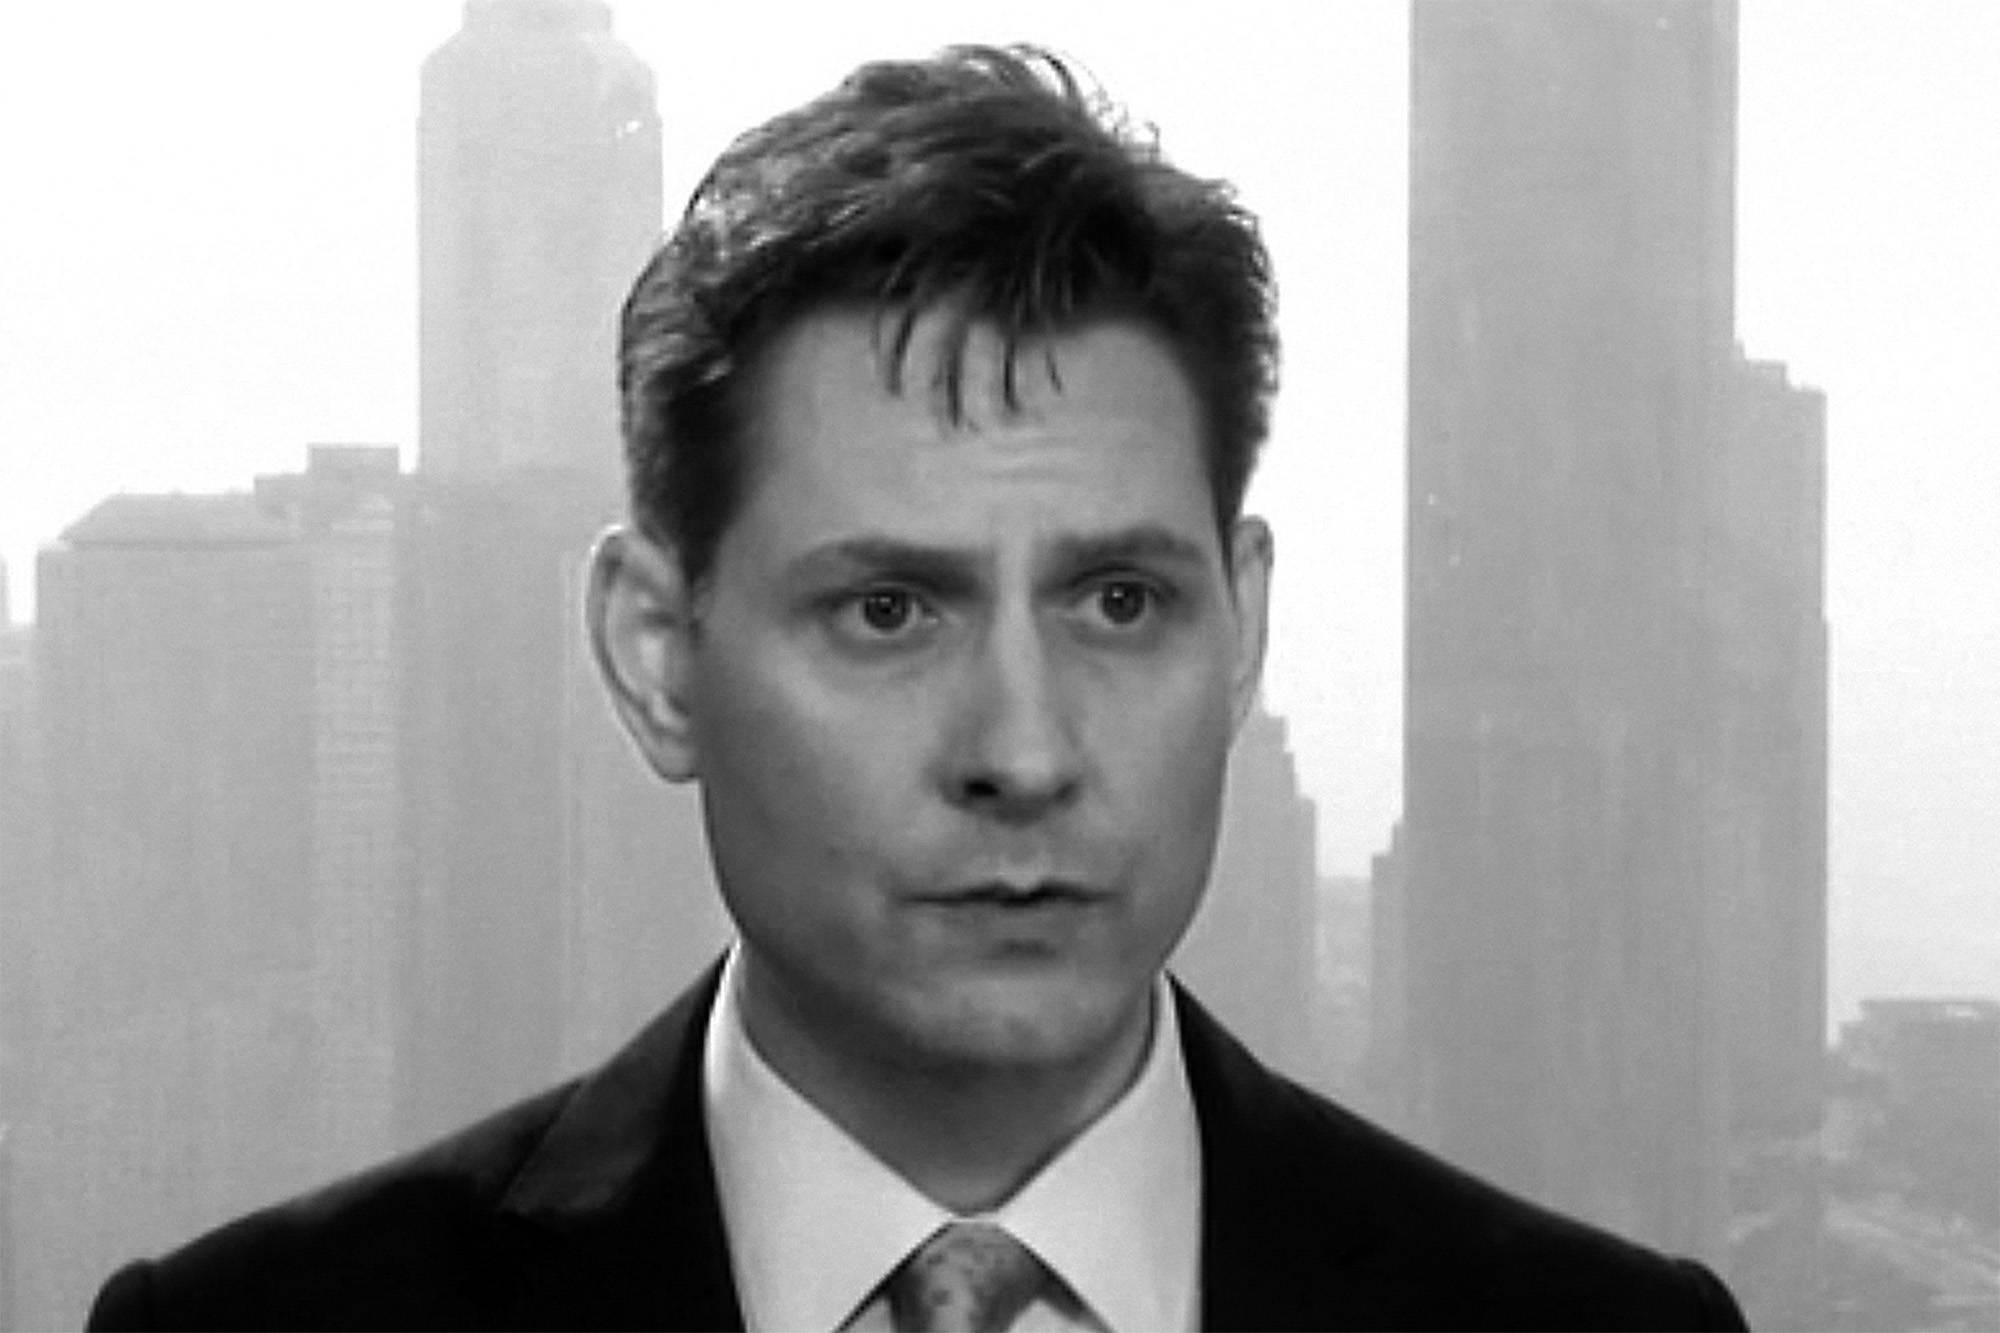 In this file image made from a video taken on March 28, 2018, Michael Kovrig, an adviser with the International Crisis Group, a Brussels-based non-governmental organization, speaks during an interview in Hong Kong.THE CANADIAN PRESS/AP